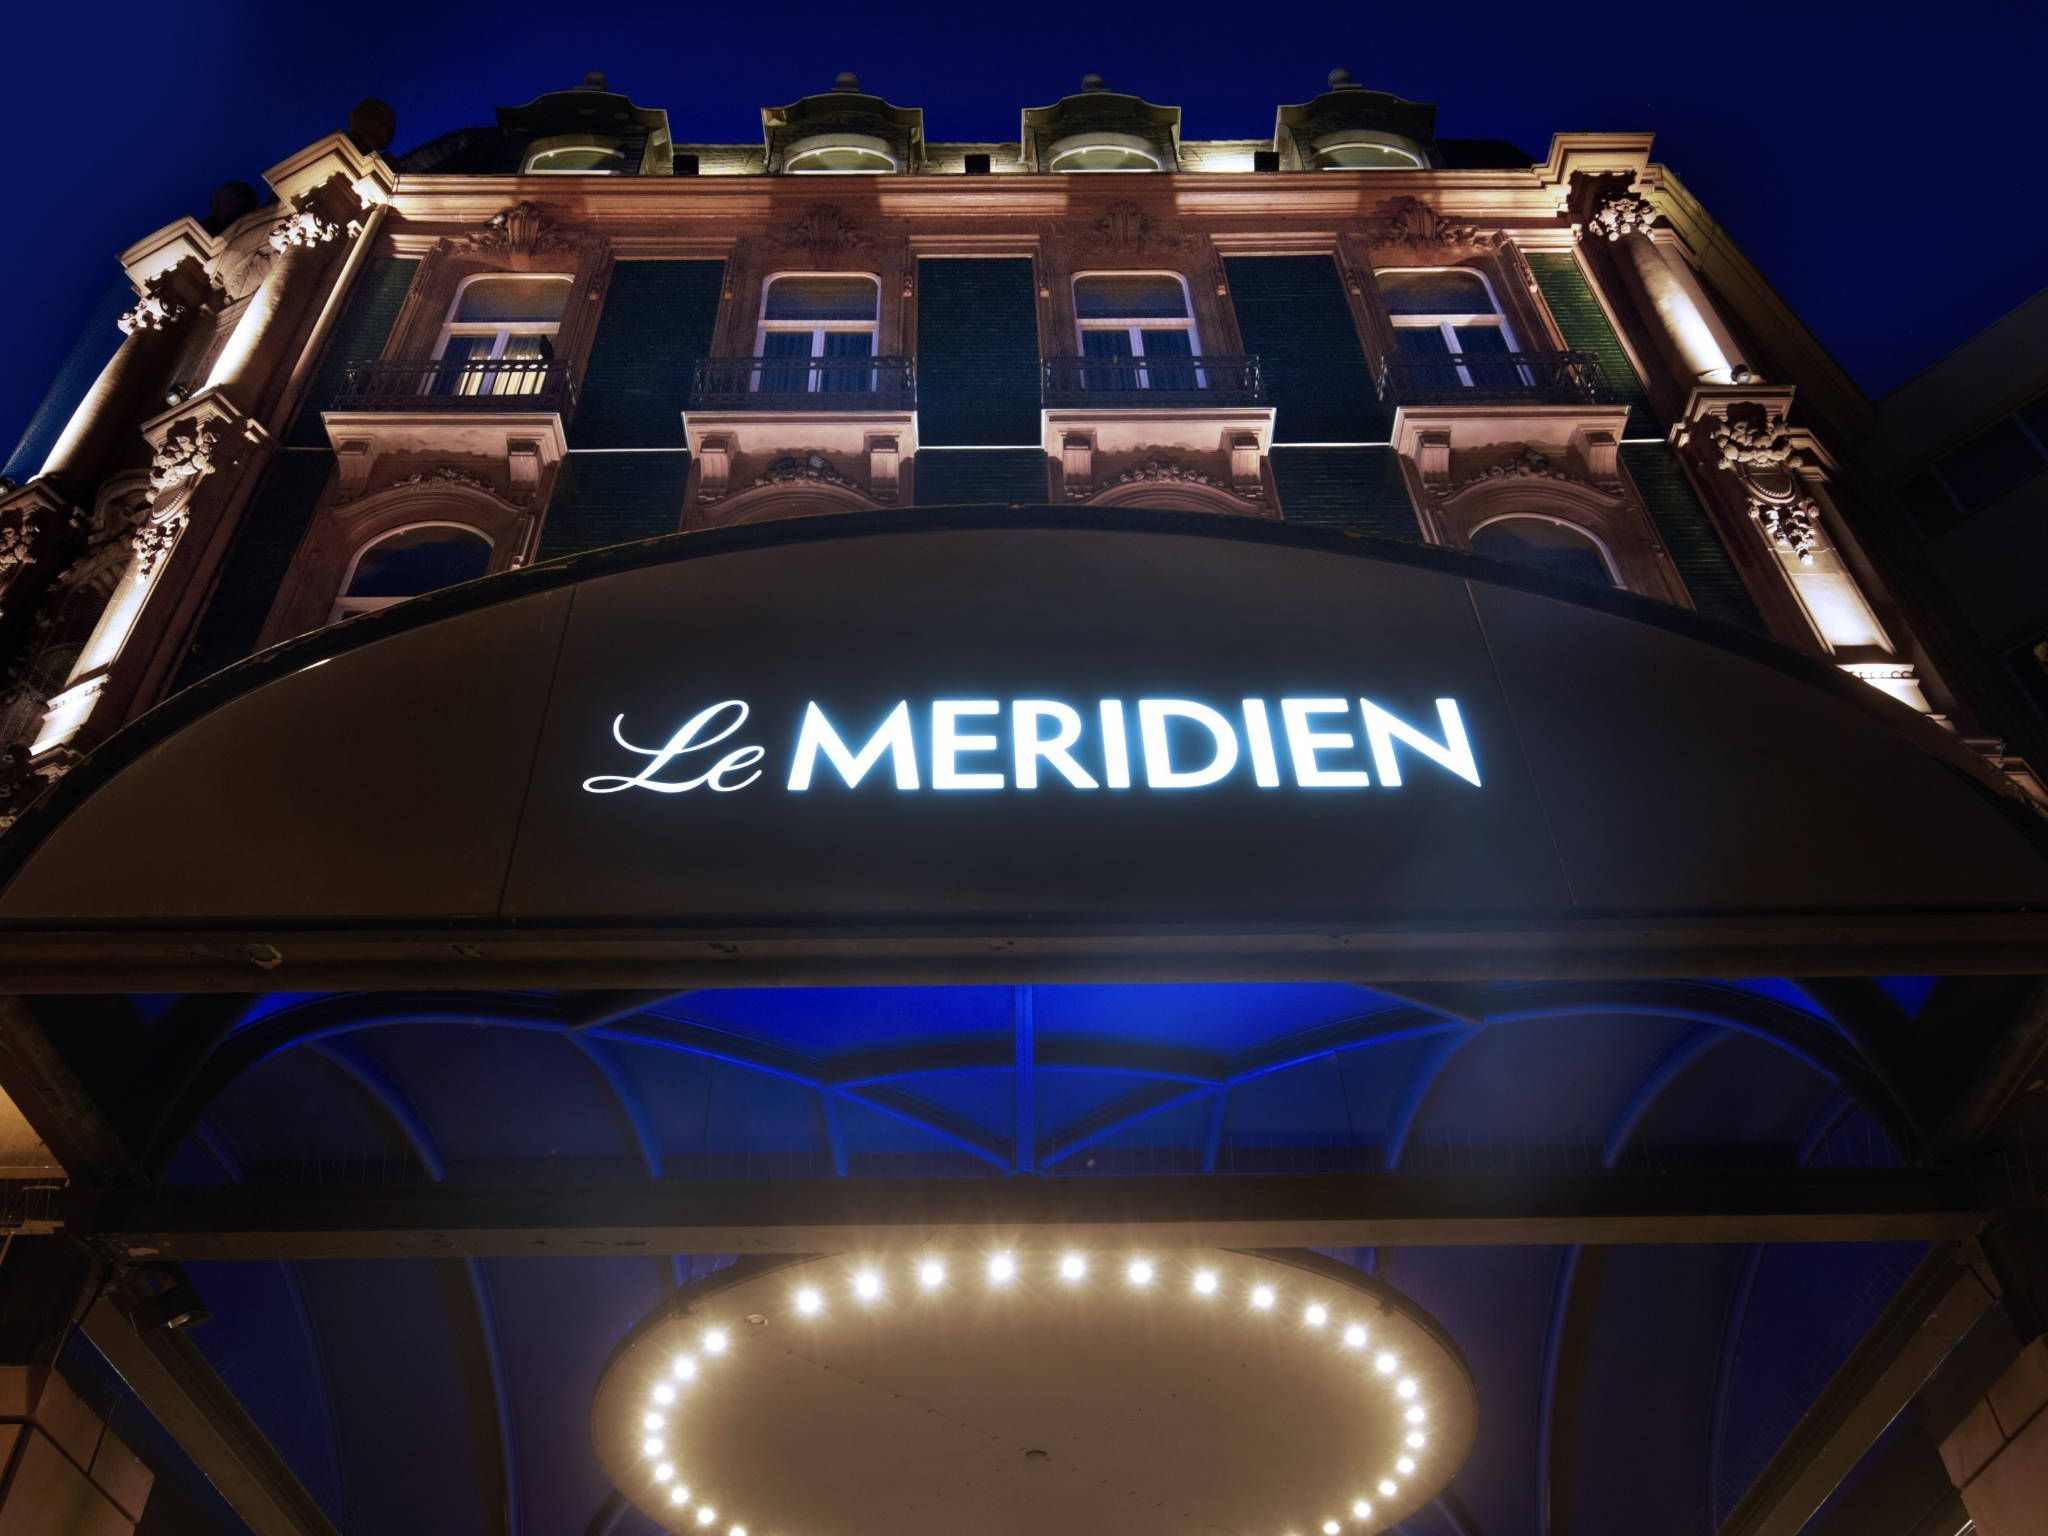 Le Meridien Hotel Frankfurt Weekend Offers